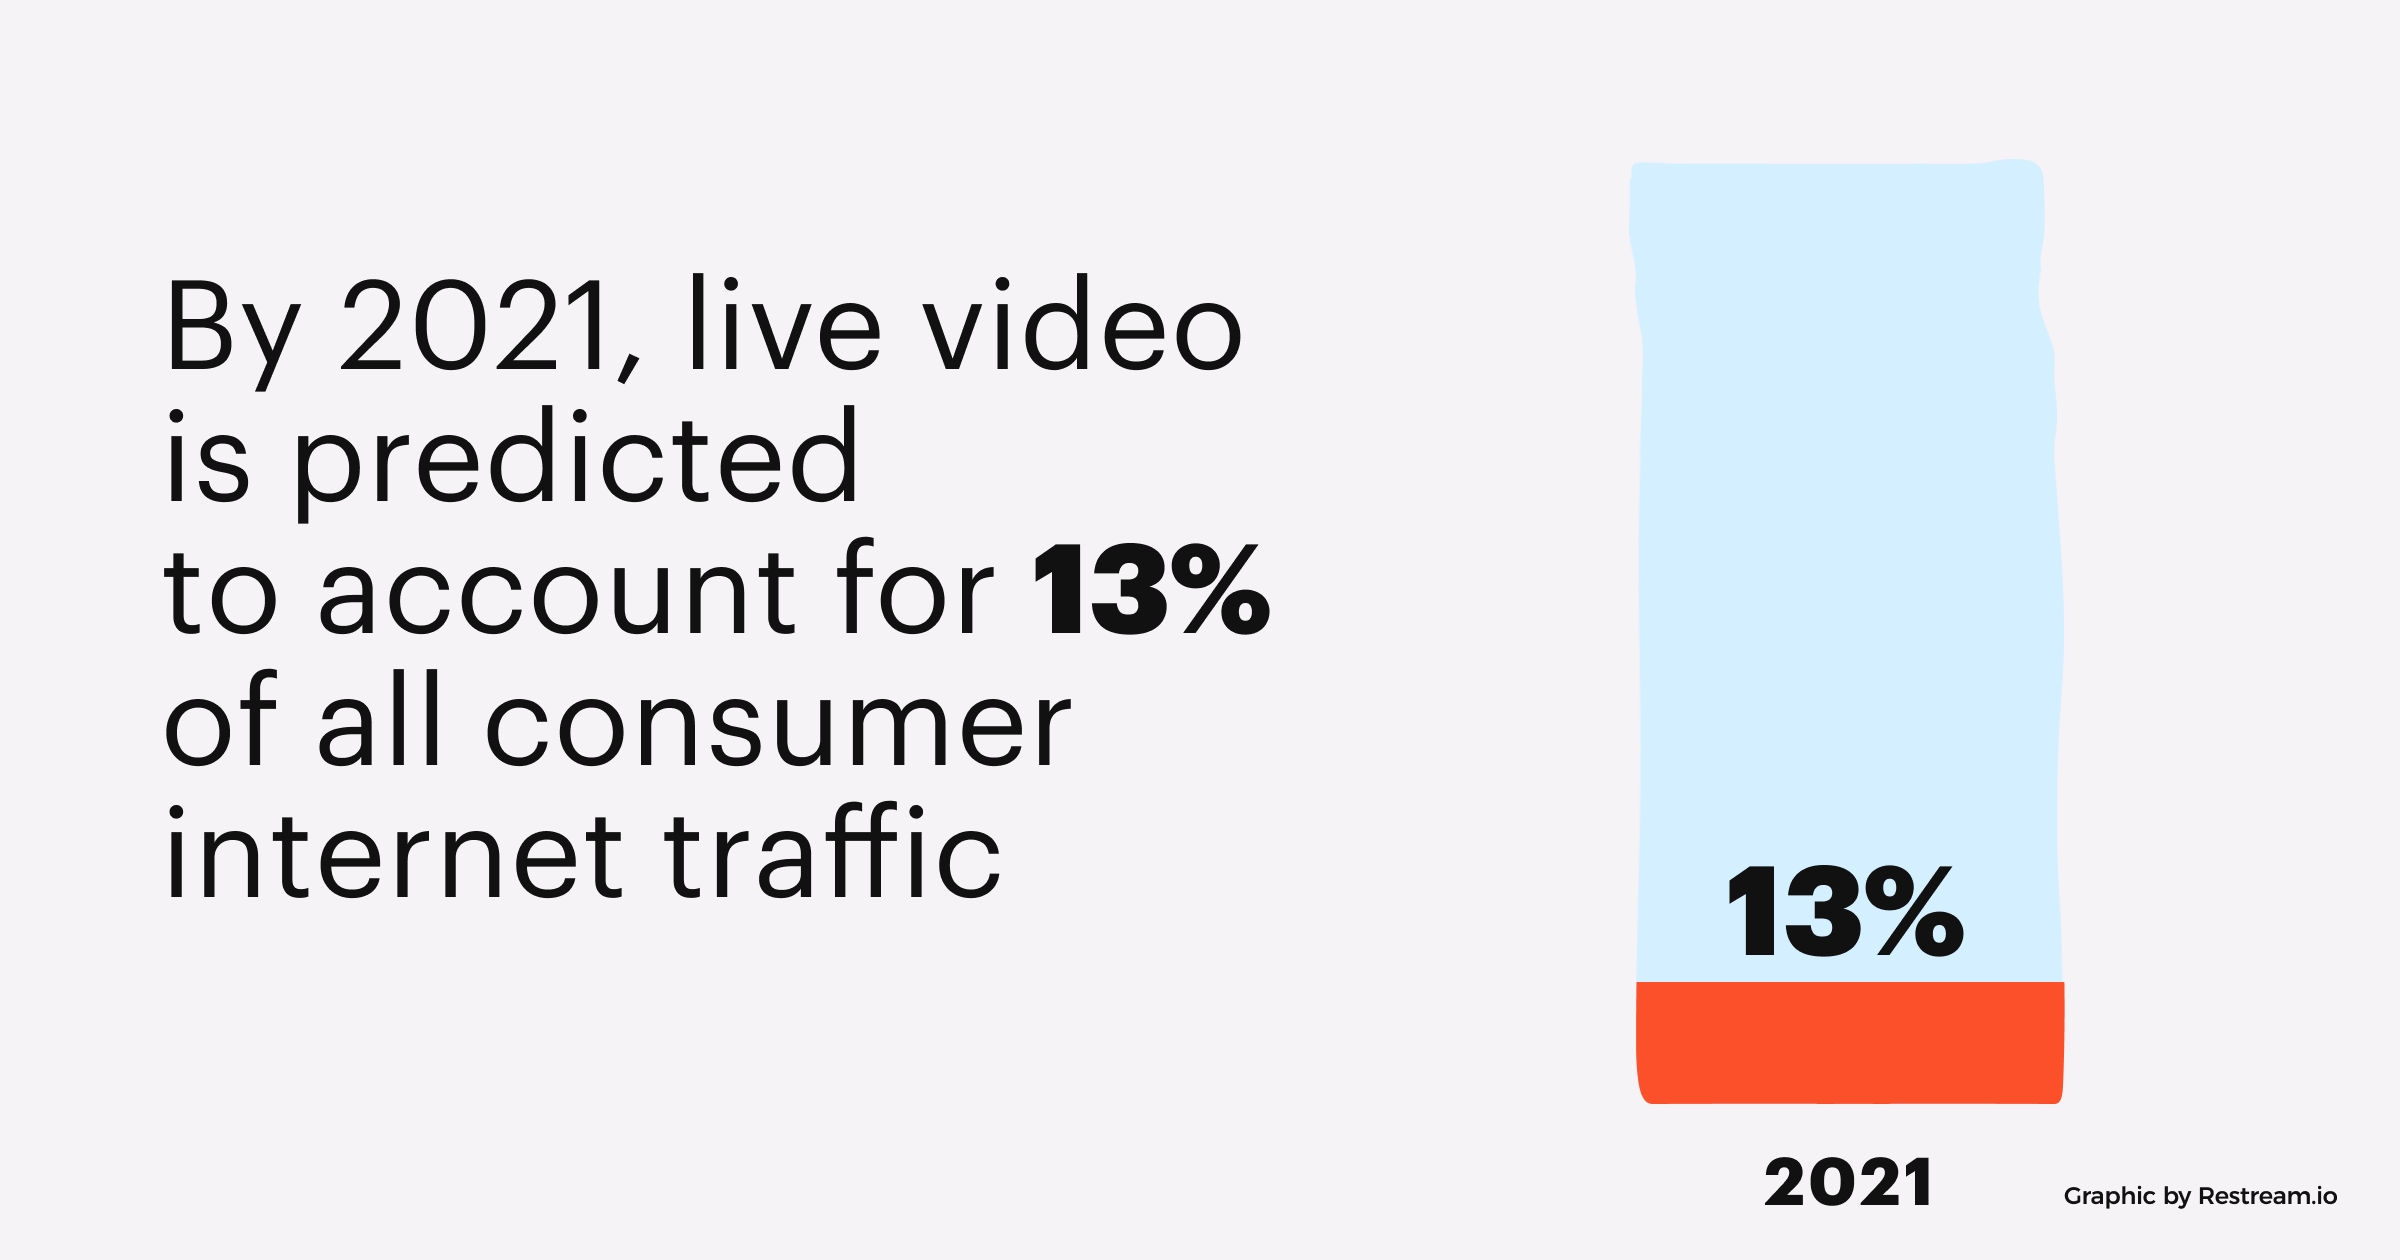 By 2021, live video is predicted to account for 13% of all consumer internet traffic